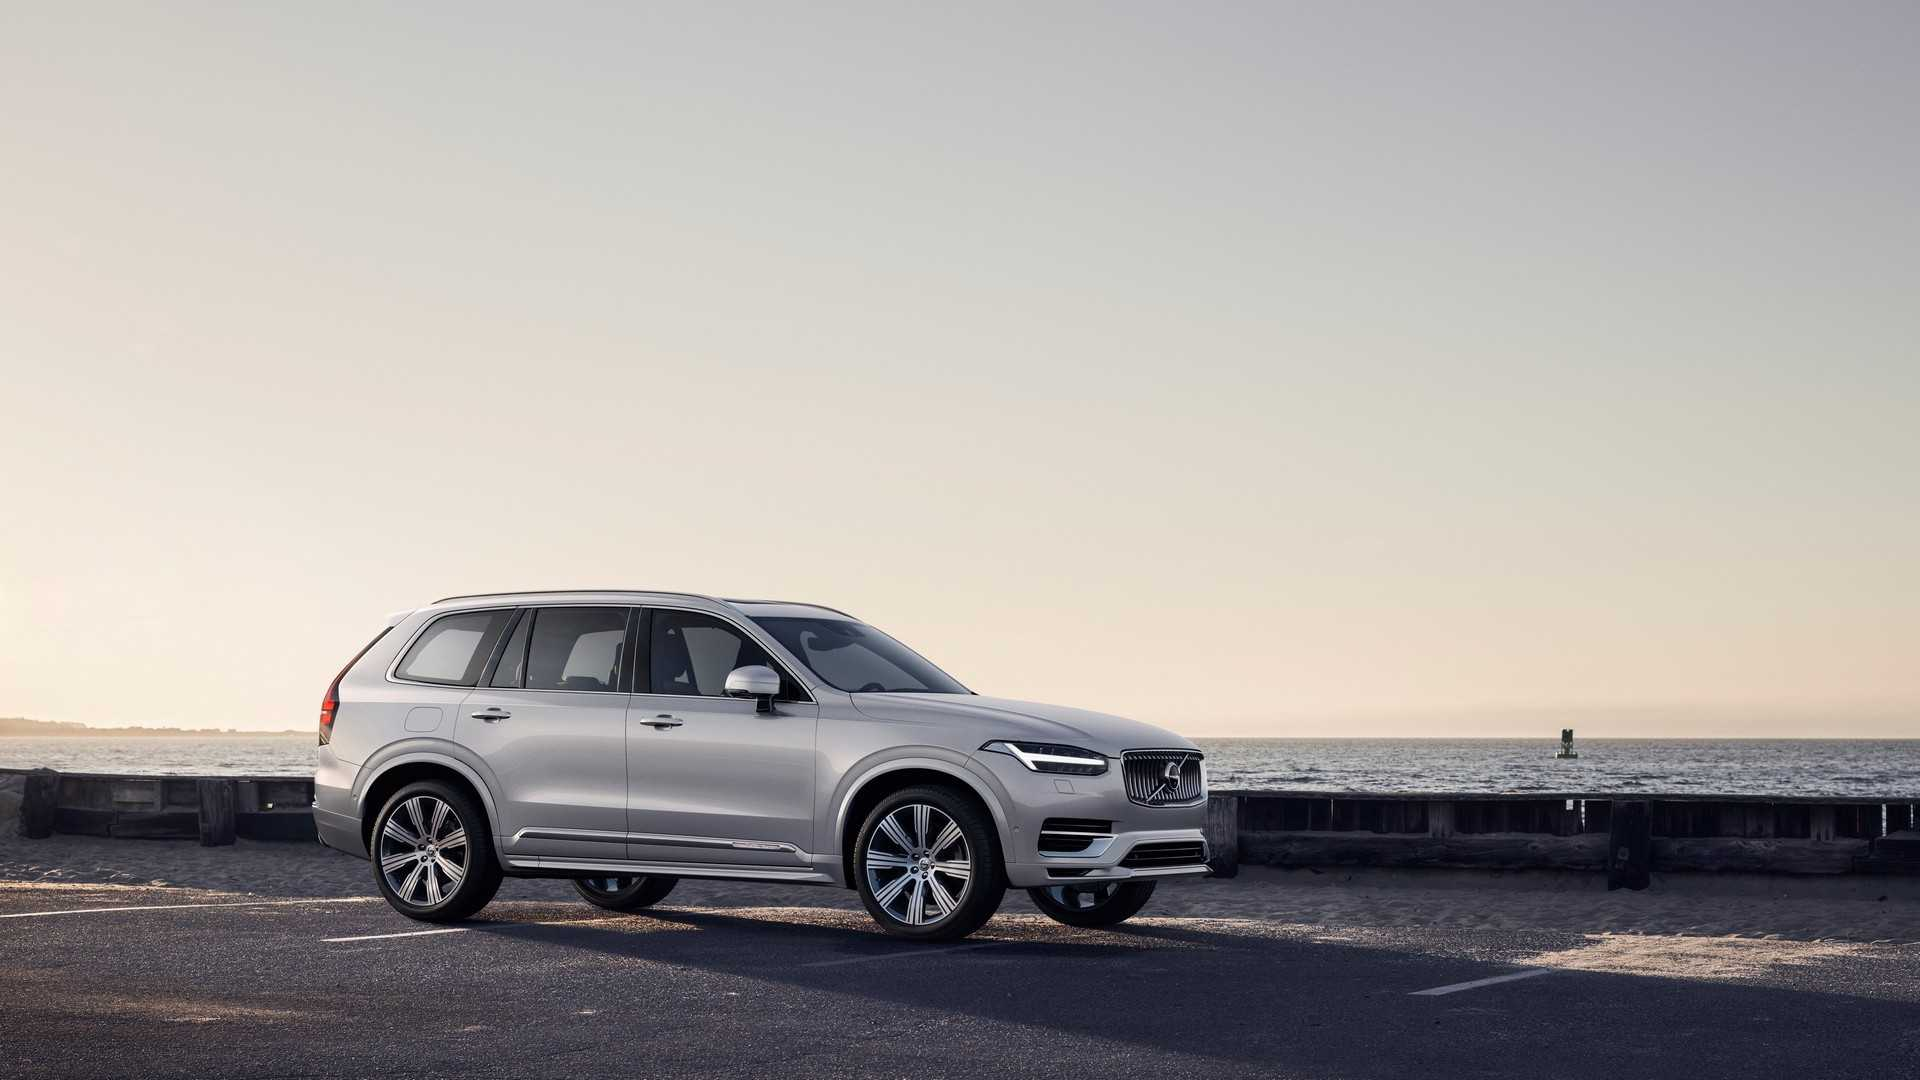 84 All New Volvo Xc90 Facelift 2020 Uk Pricing